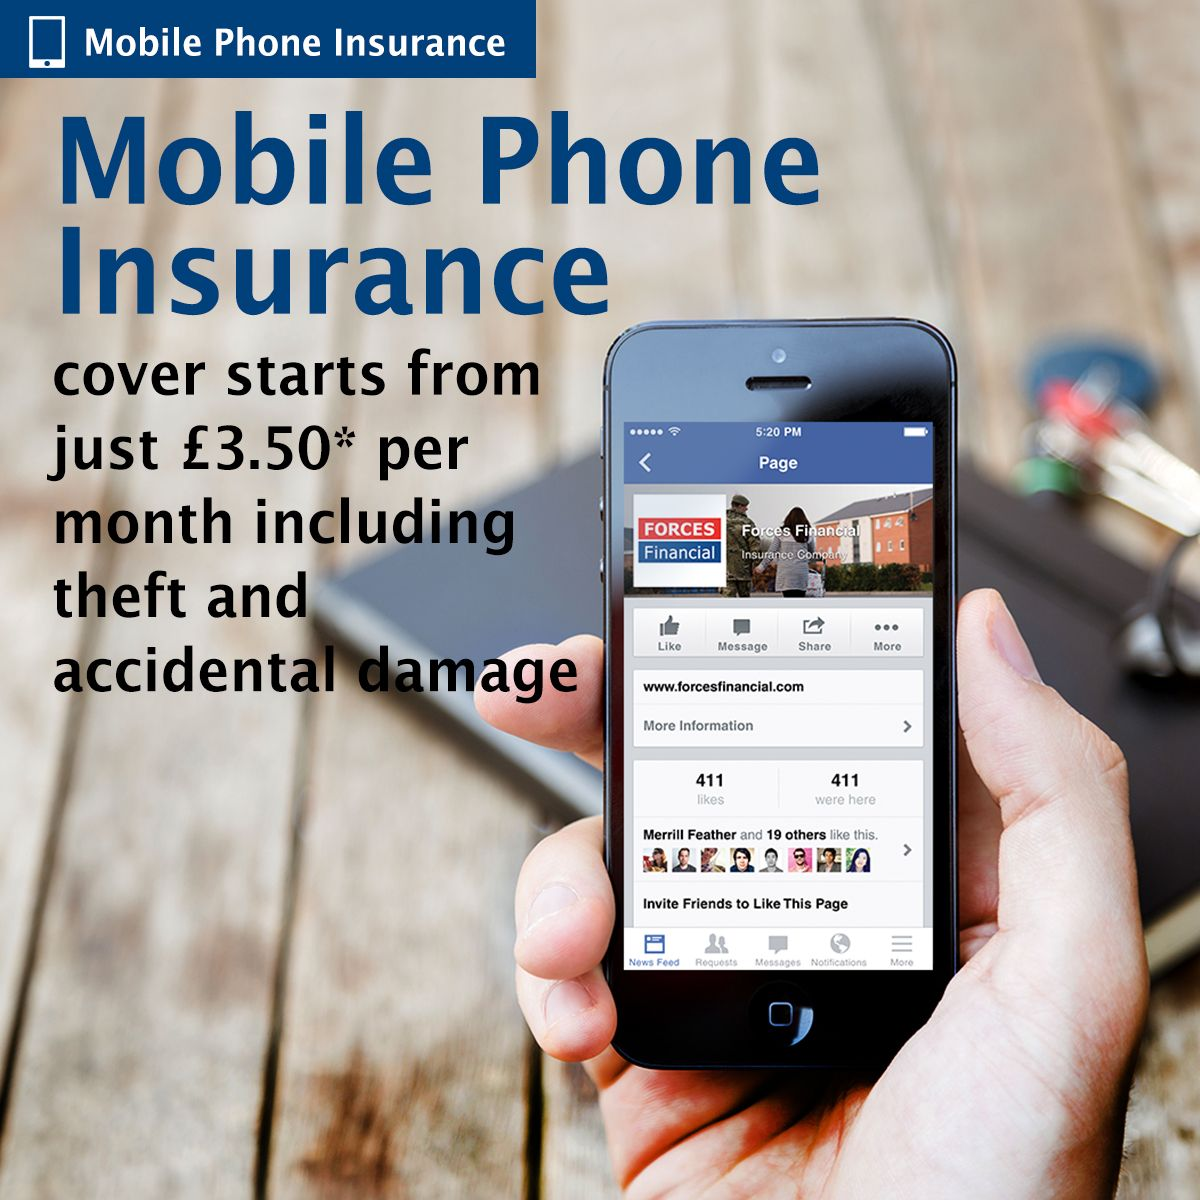 Mobile Phone Insurance Cover Your Mobile Phone Against Theft Or